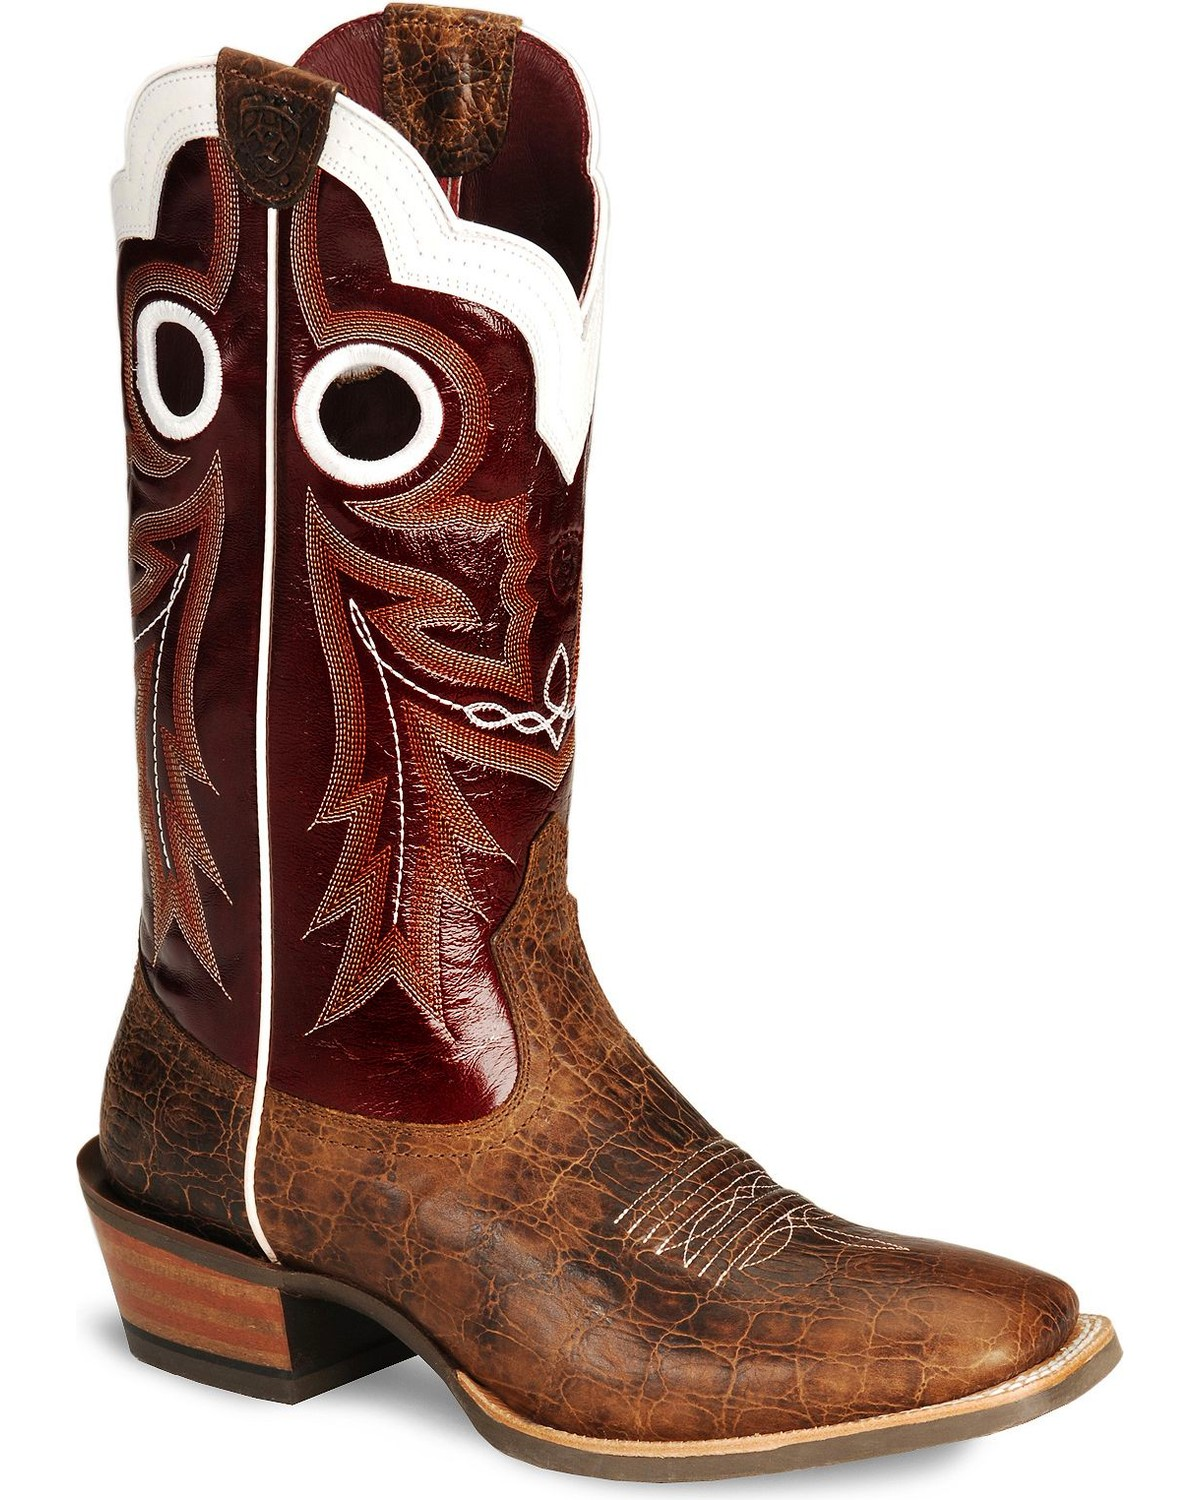 Ariat Wildstock Cowboy Boots - Wide Square Toe - Country Outfitter